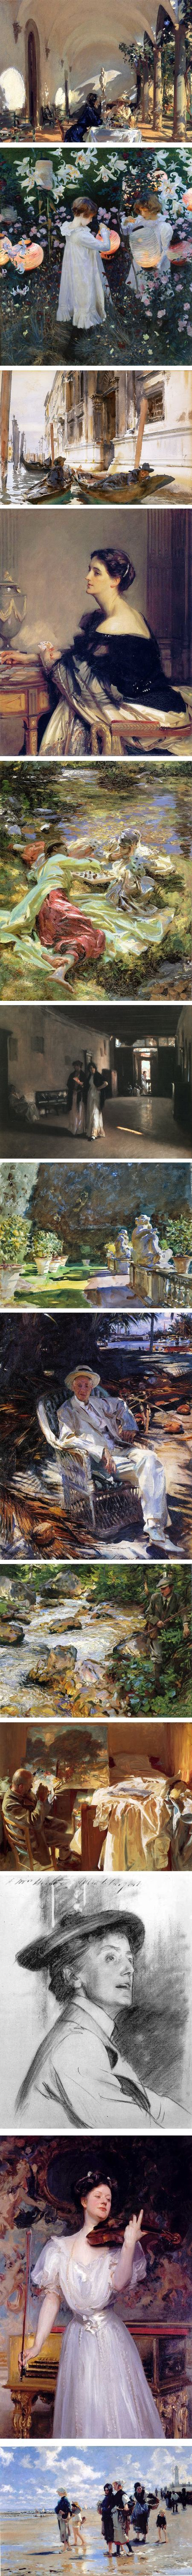 A few more from John Singer Sargent